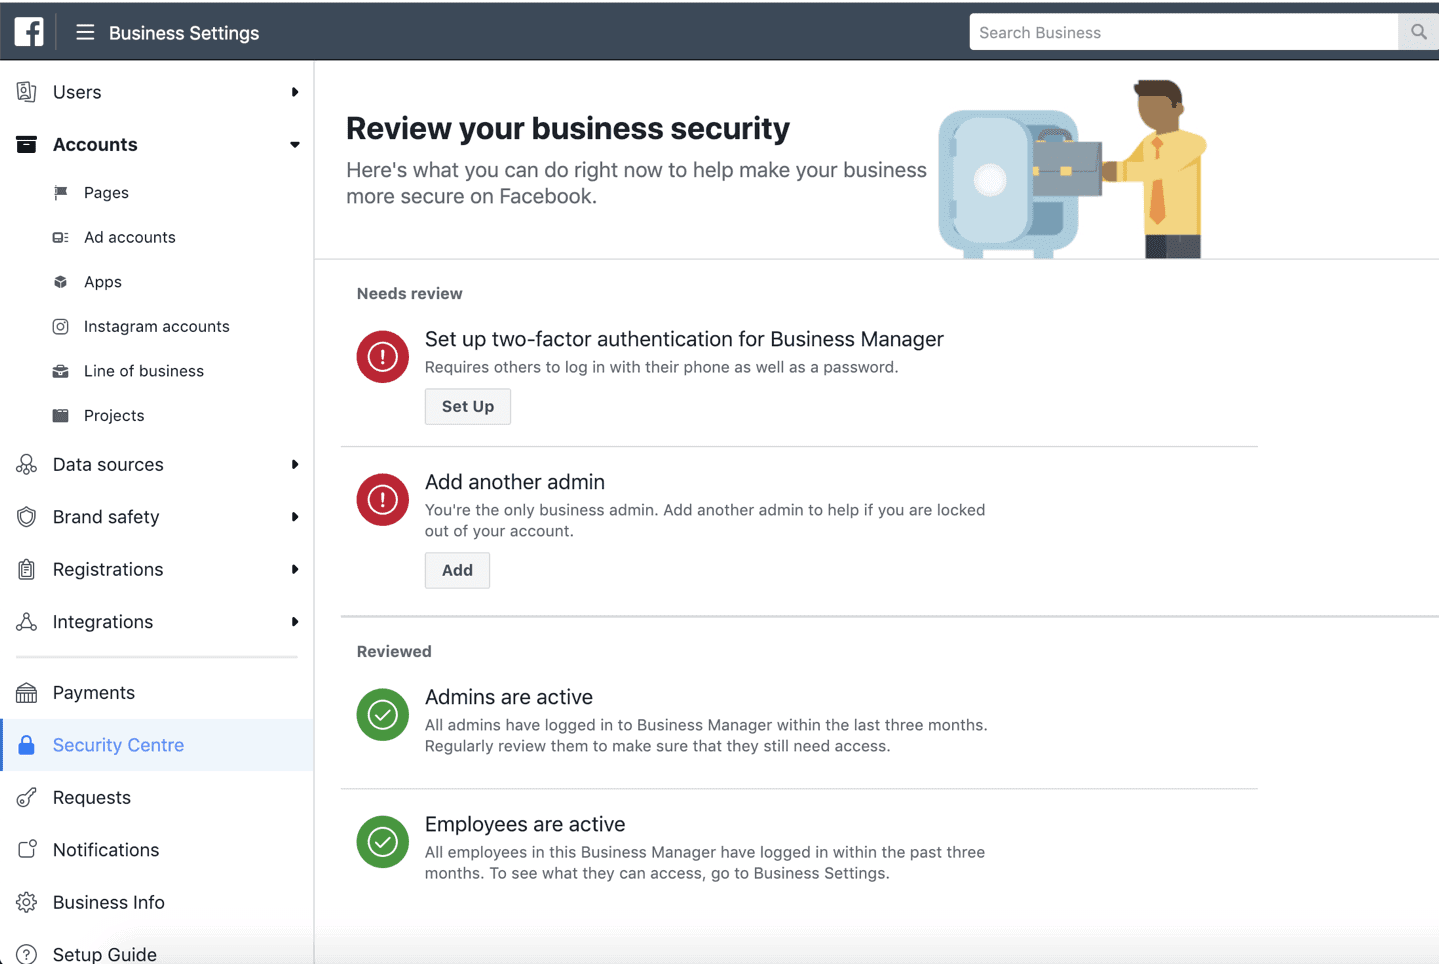 Facebook Business Manager security